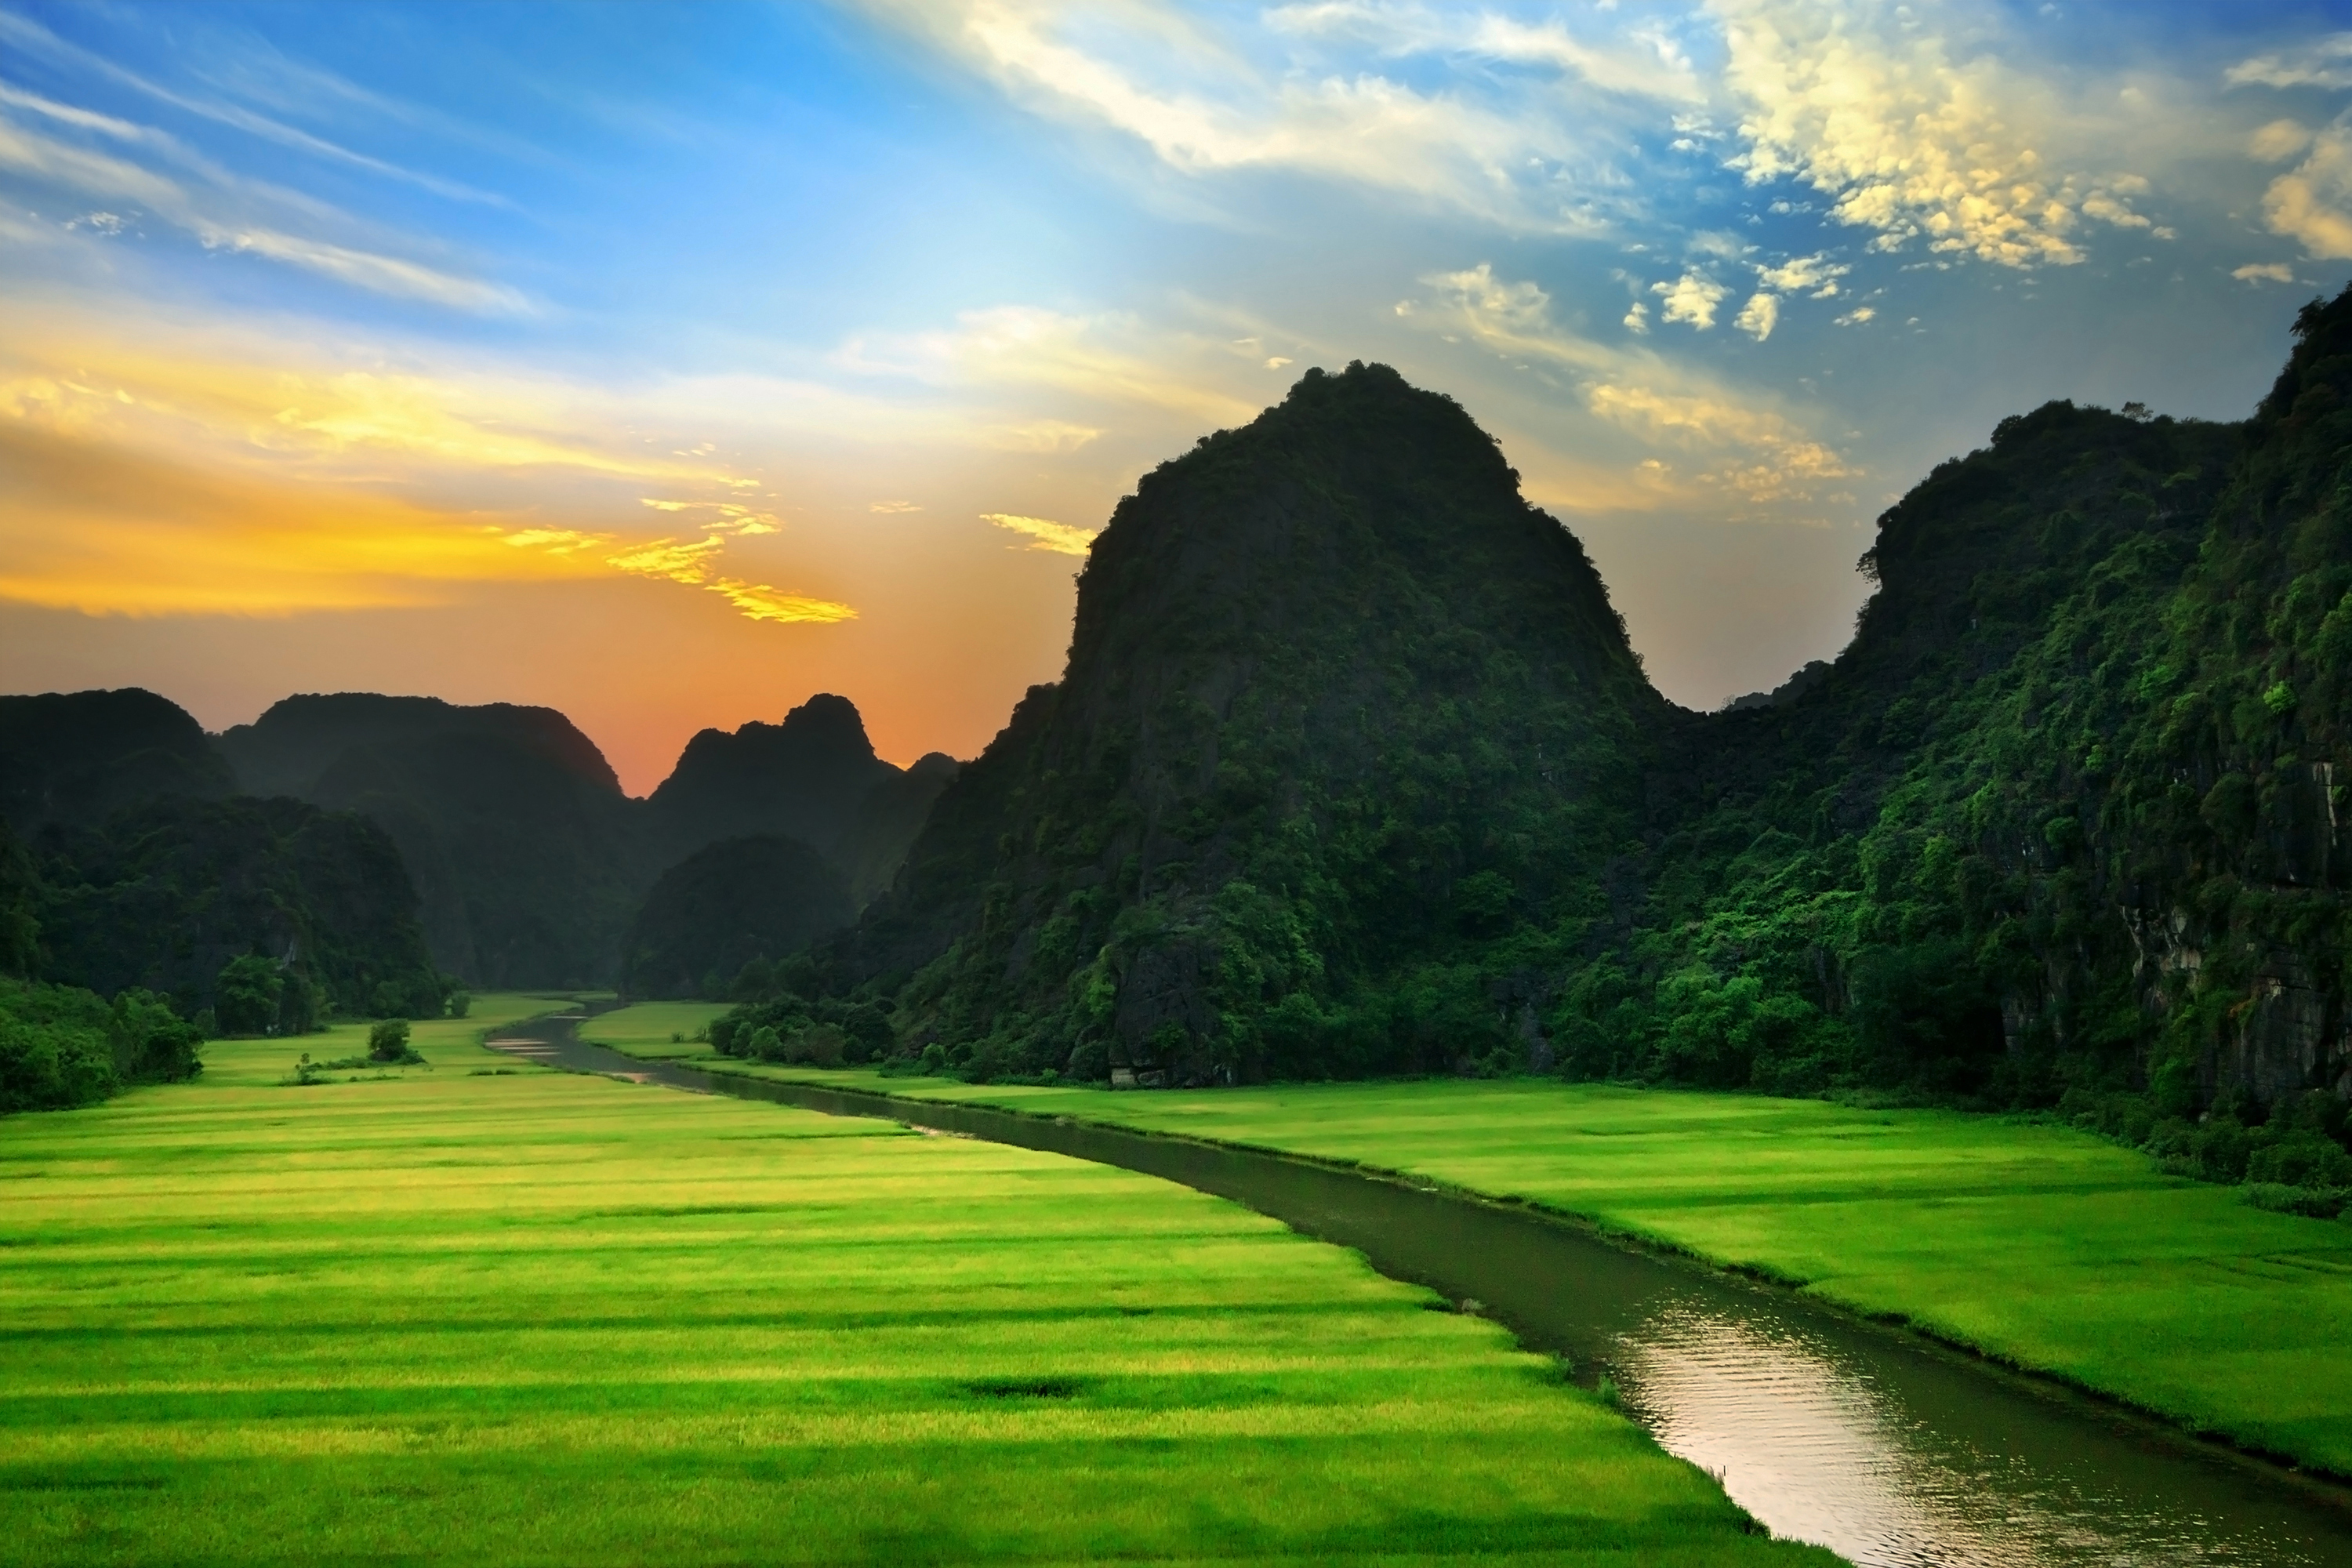 DISCOVER THE HIGHLIGHTS OF NINH BINH